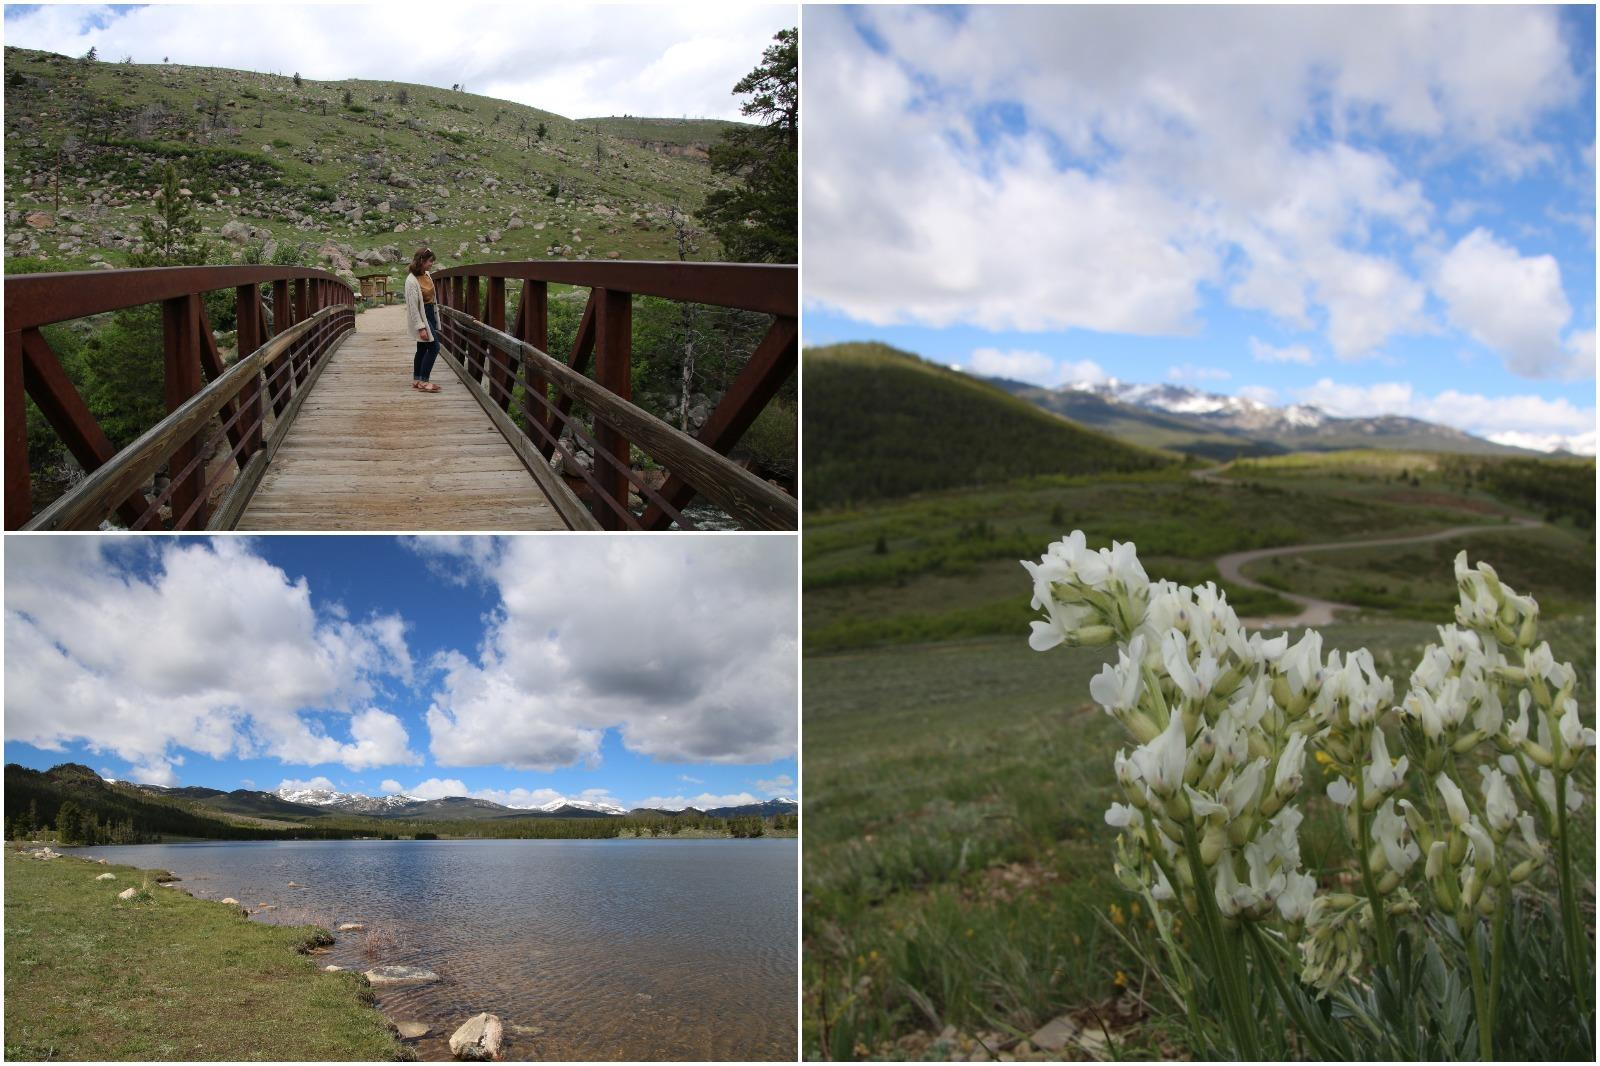 Enjoy hiking around the alpine lakes on the Loop Road in Wyoming